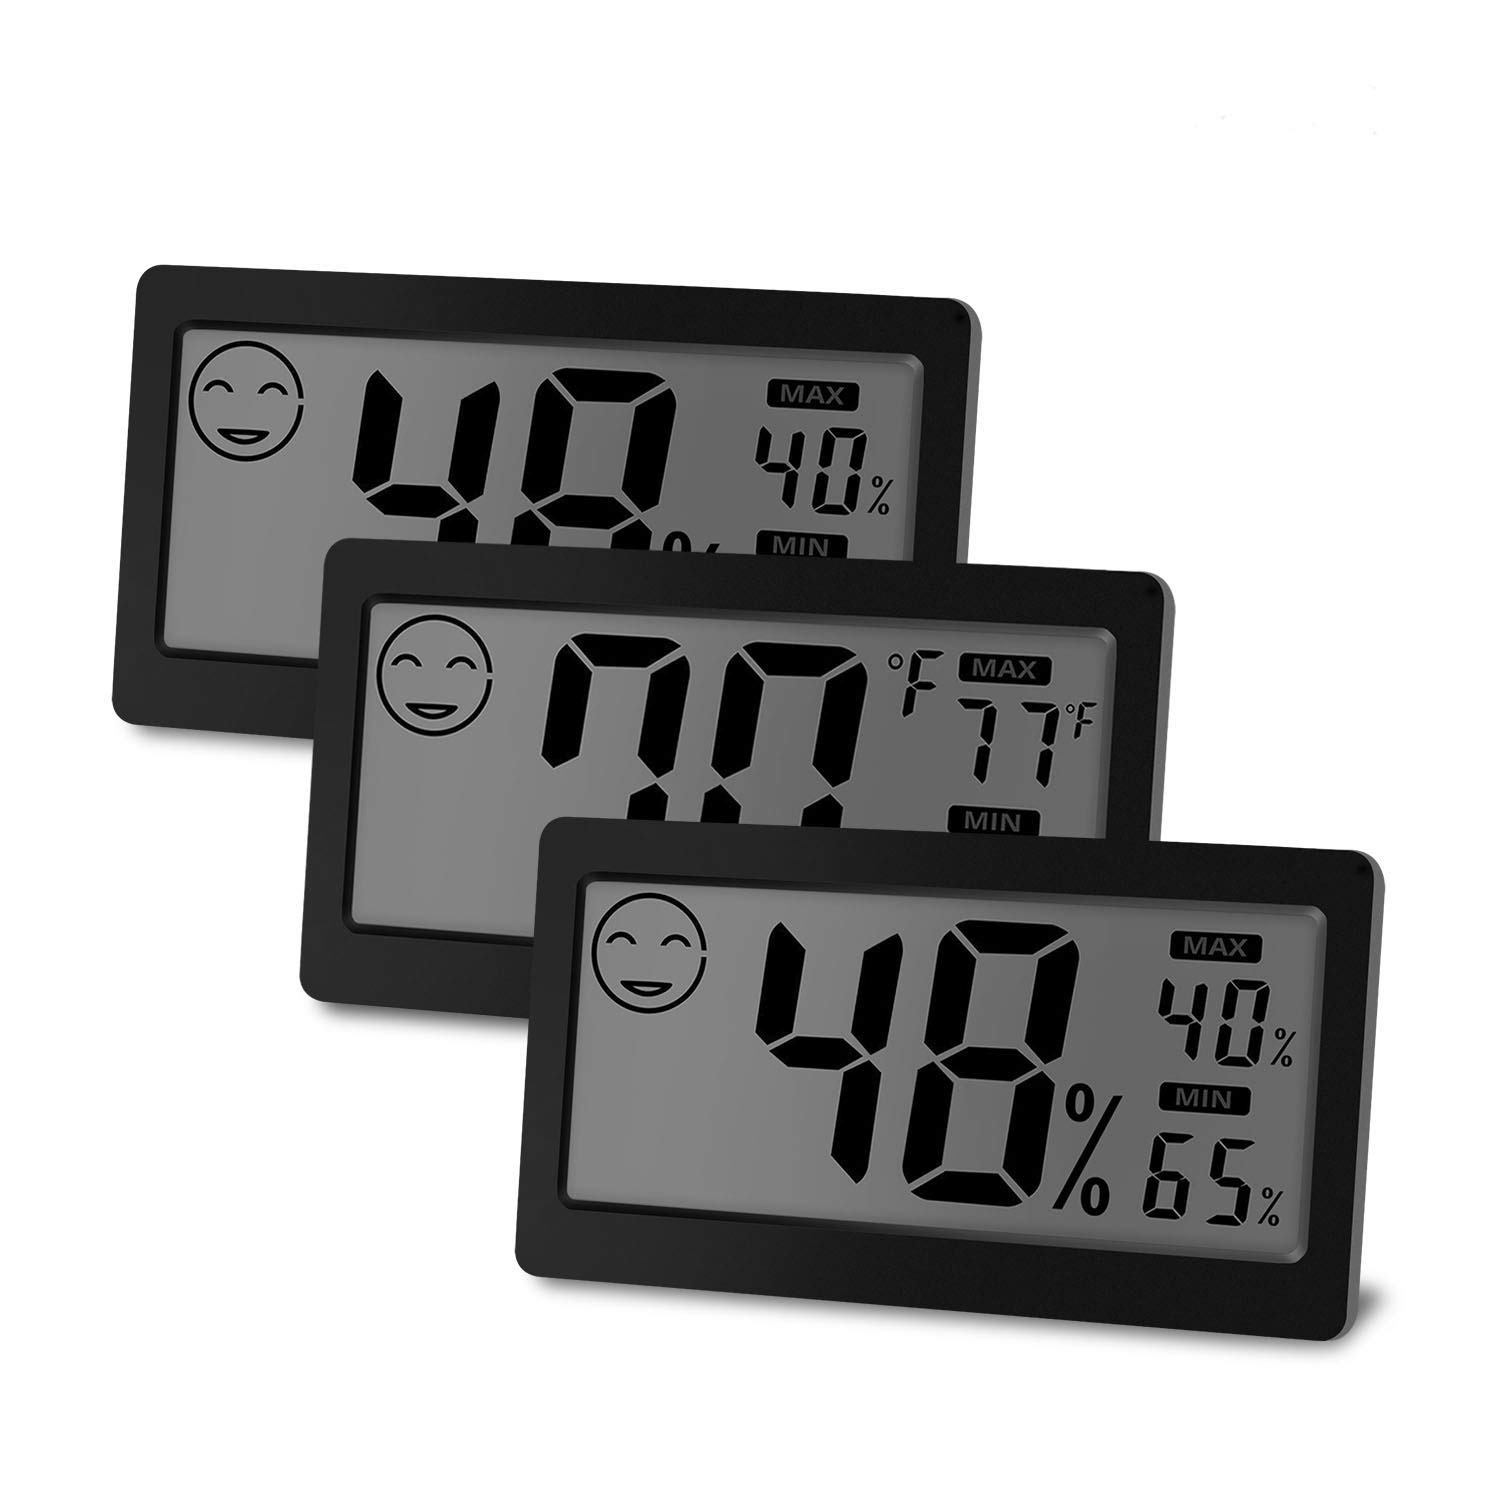 JLENOVEG Digital Indoor Thermometer Hygrometer Temperature and Humidity Display with 3.3 inch LCD Table Standing Magnet Attaching for Household Office Gym Kitchen (3)